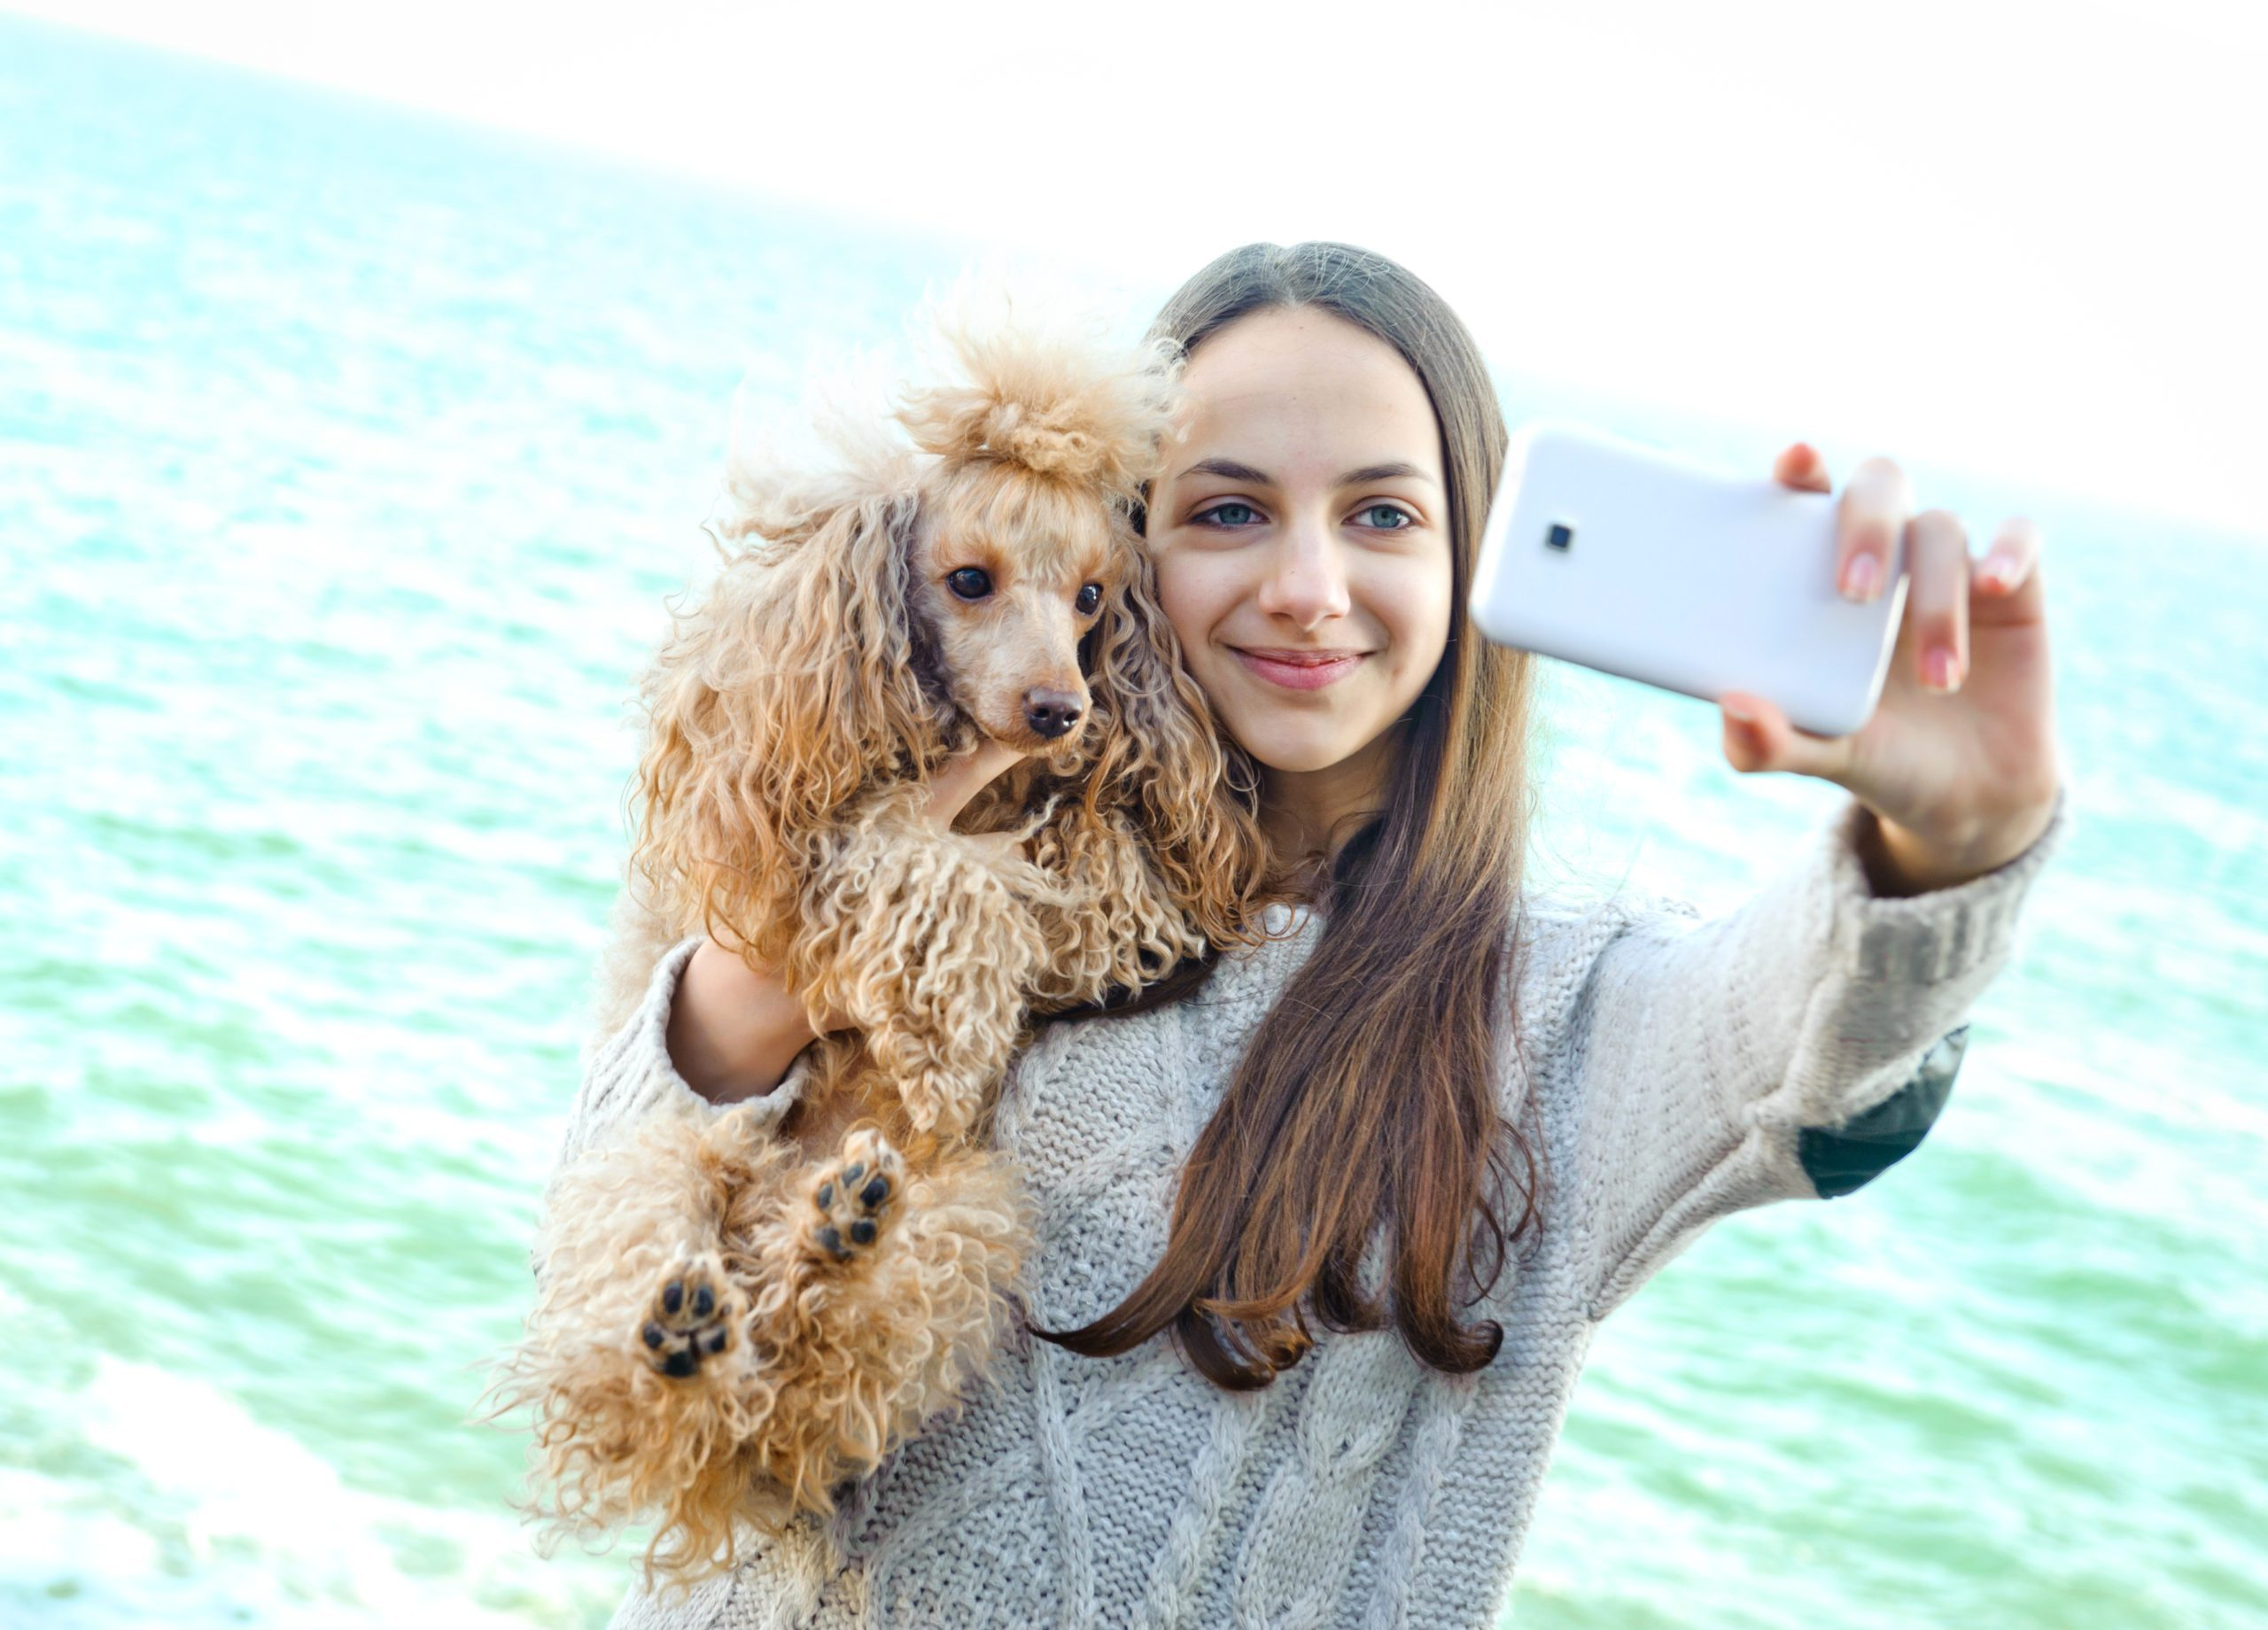 Girl taking selfies of herself and dog.